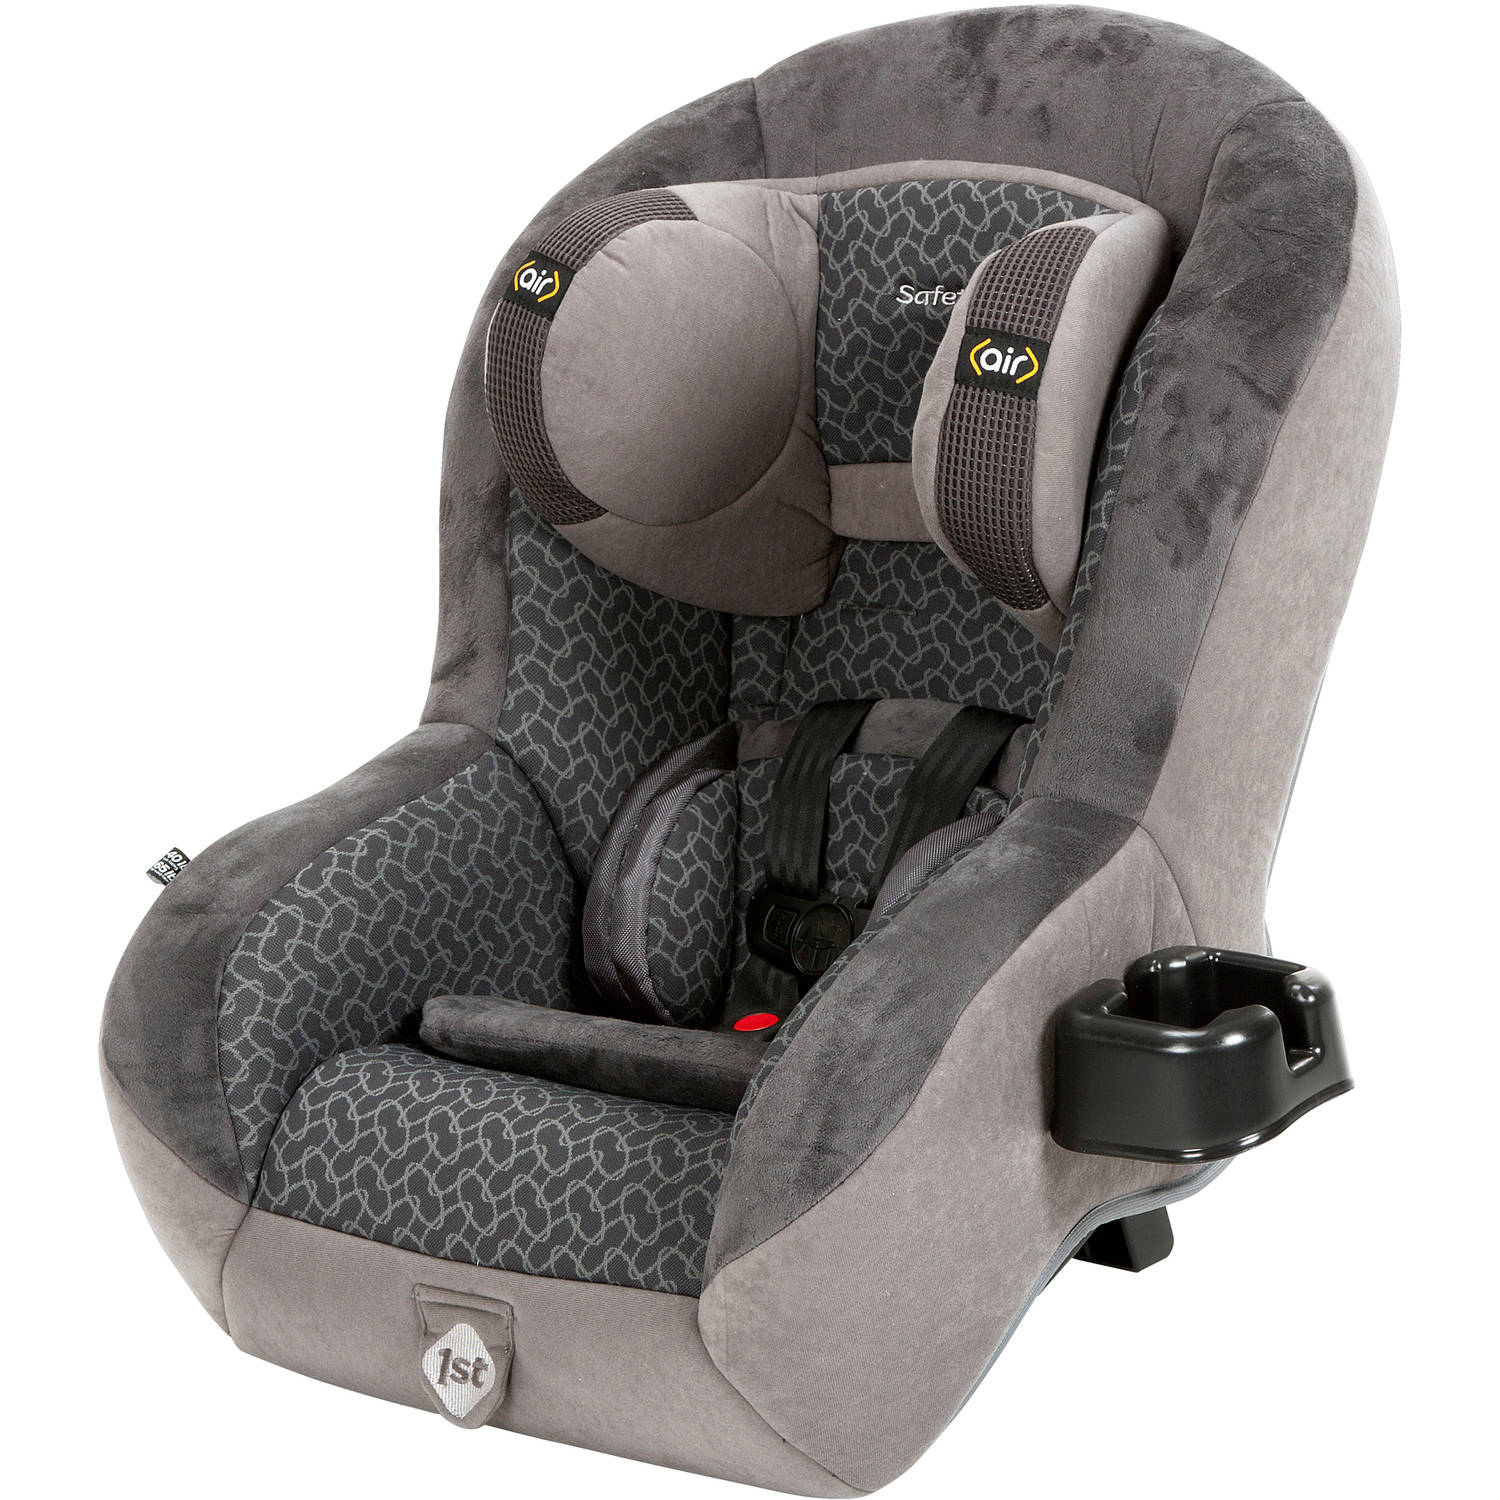 Safety 1st Chart Air 65 Convertible Car Seat, Monorail